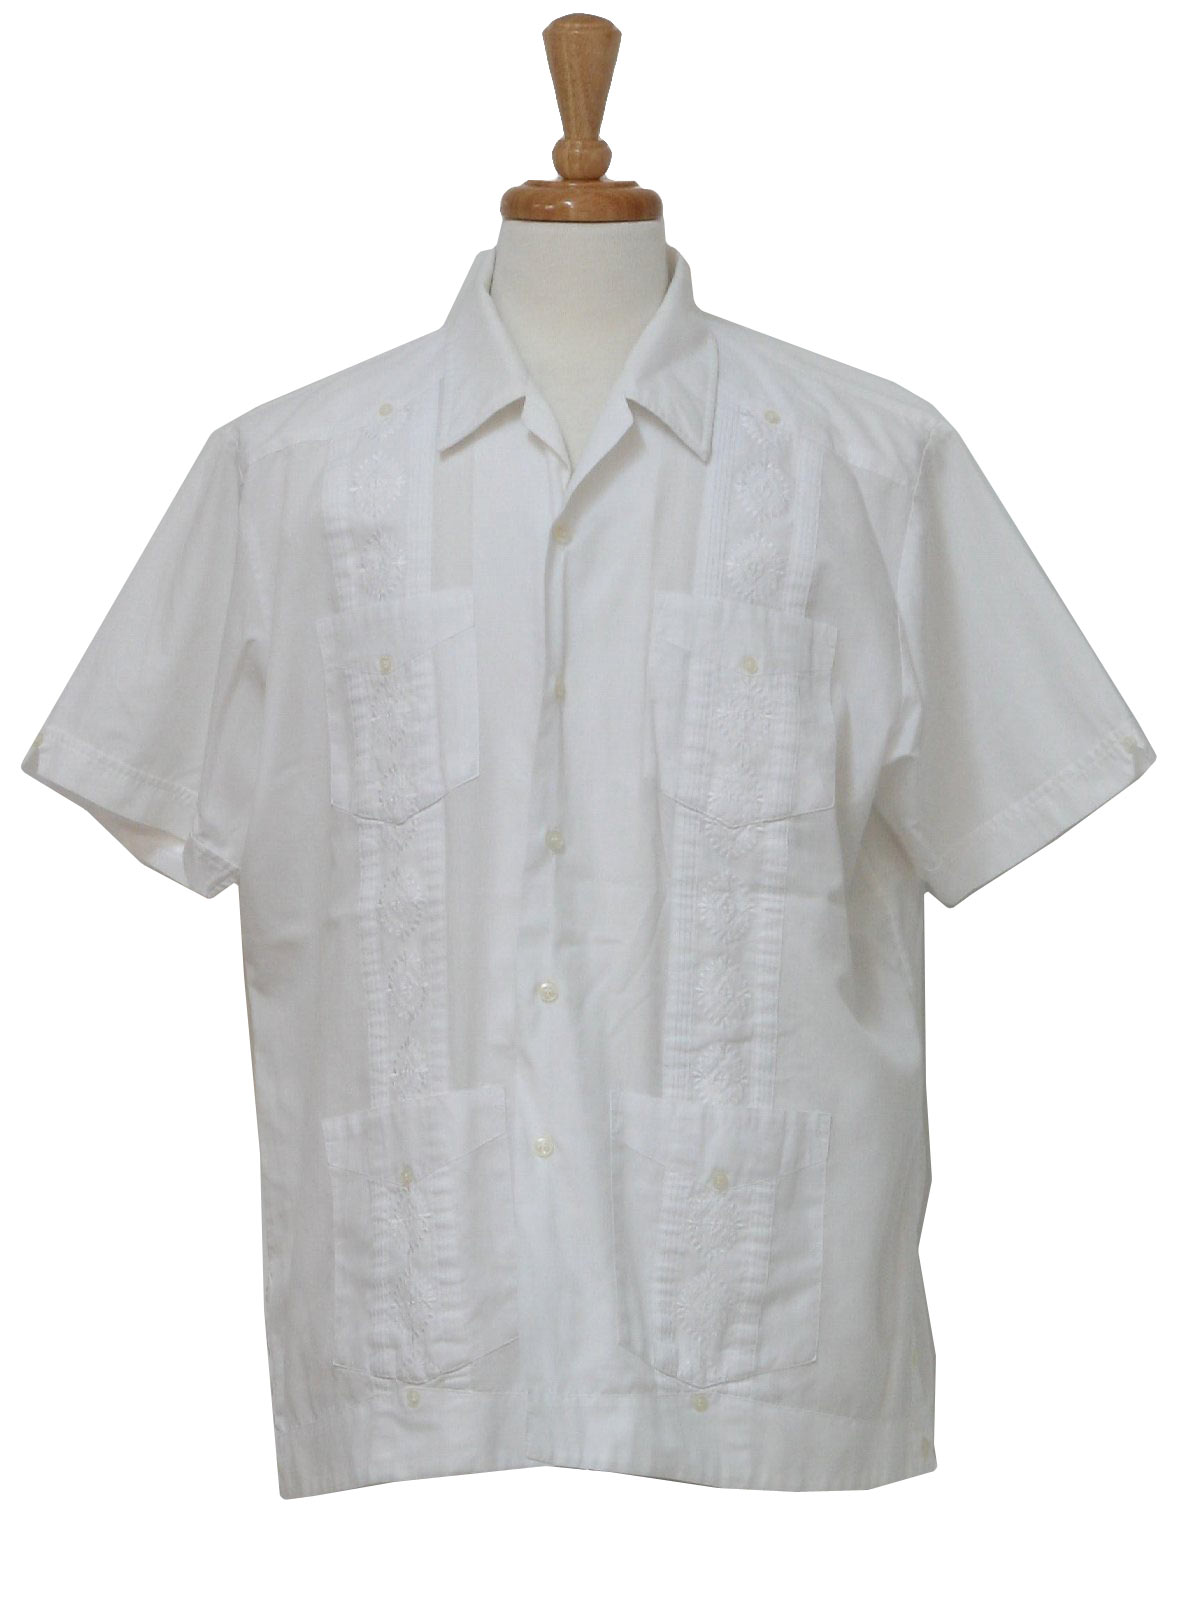 The Retro Fashion, Embroider on Shirts